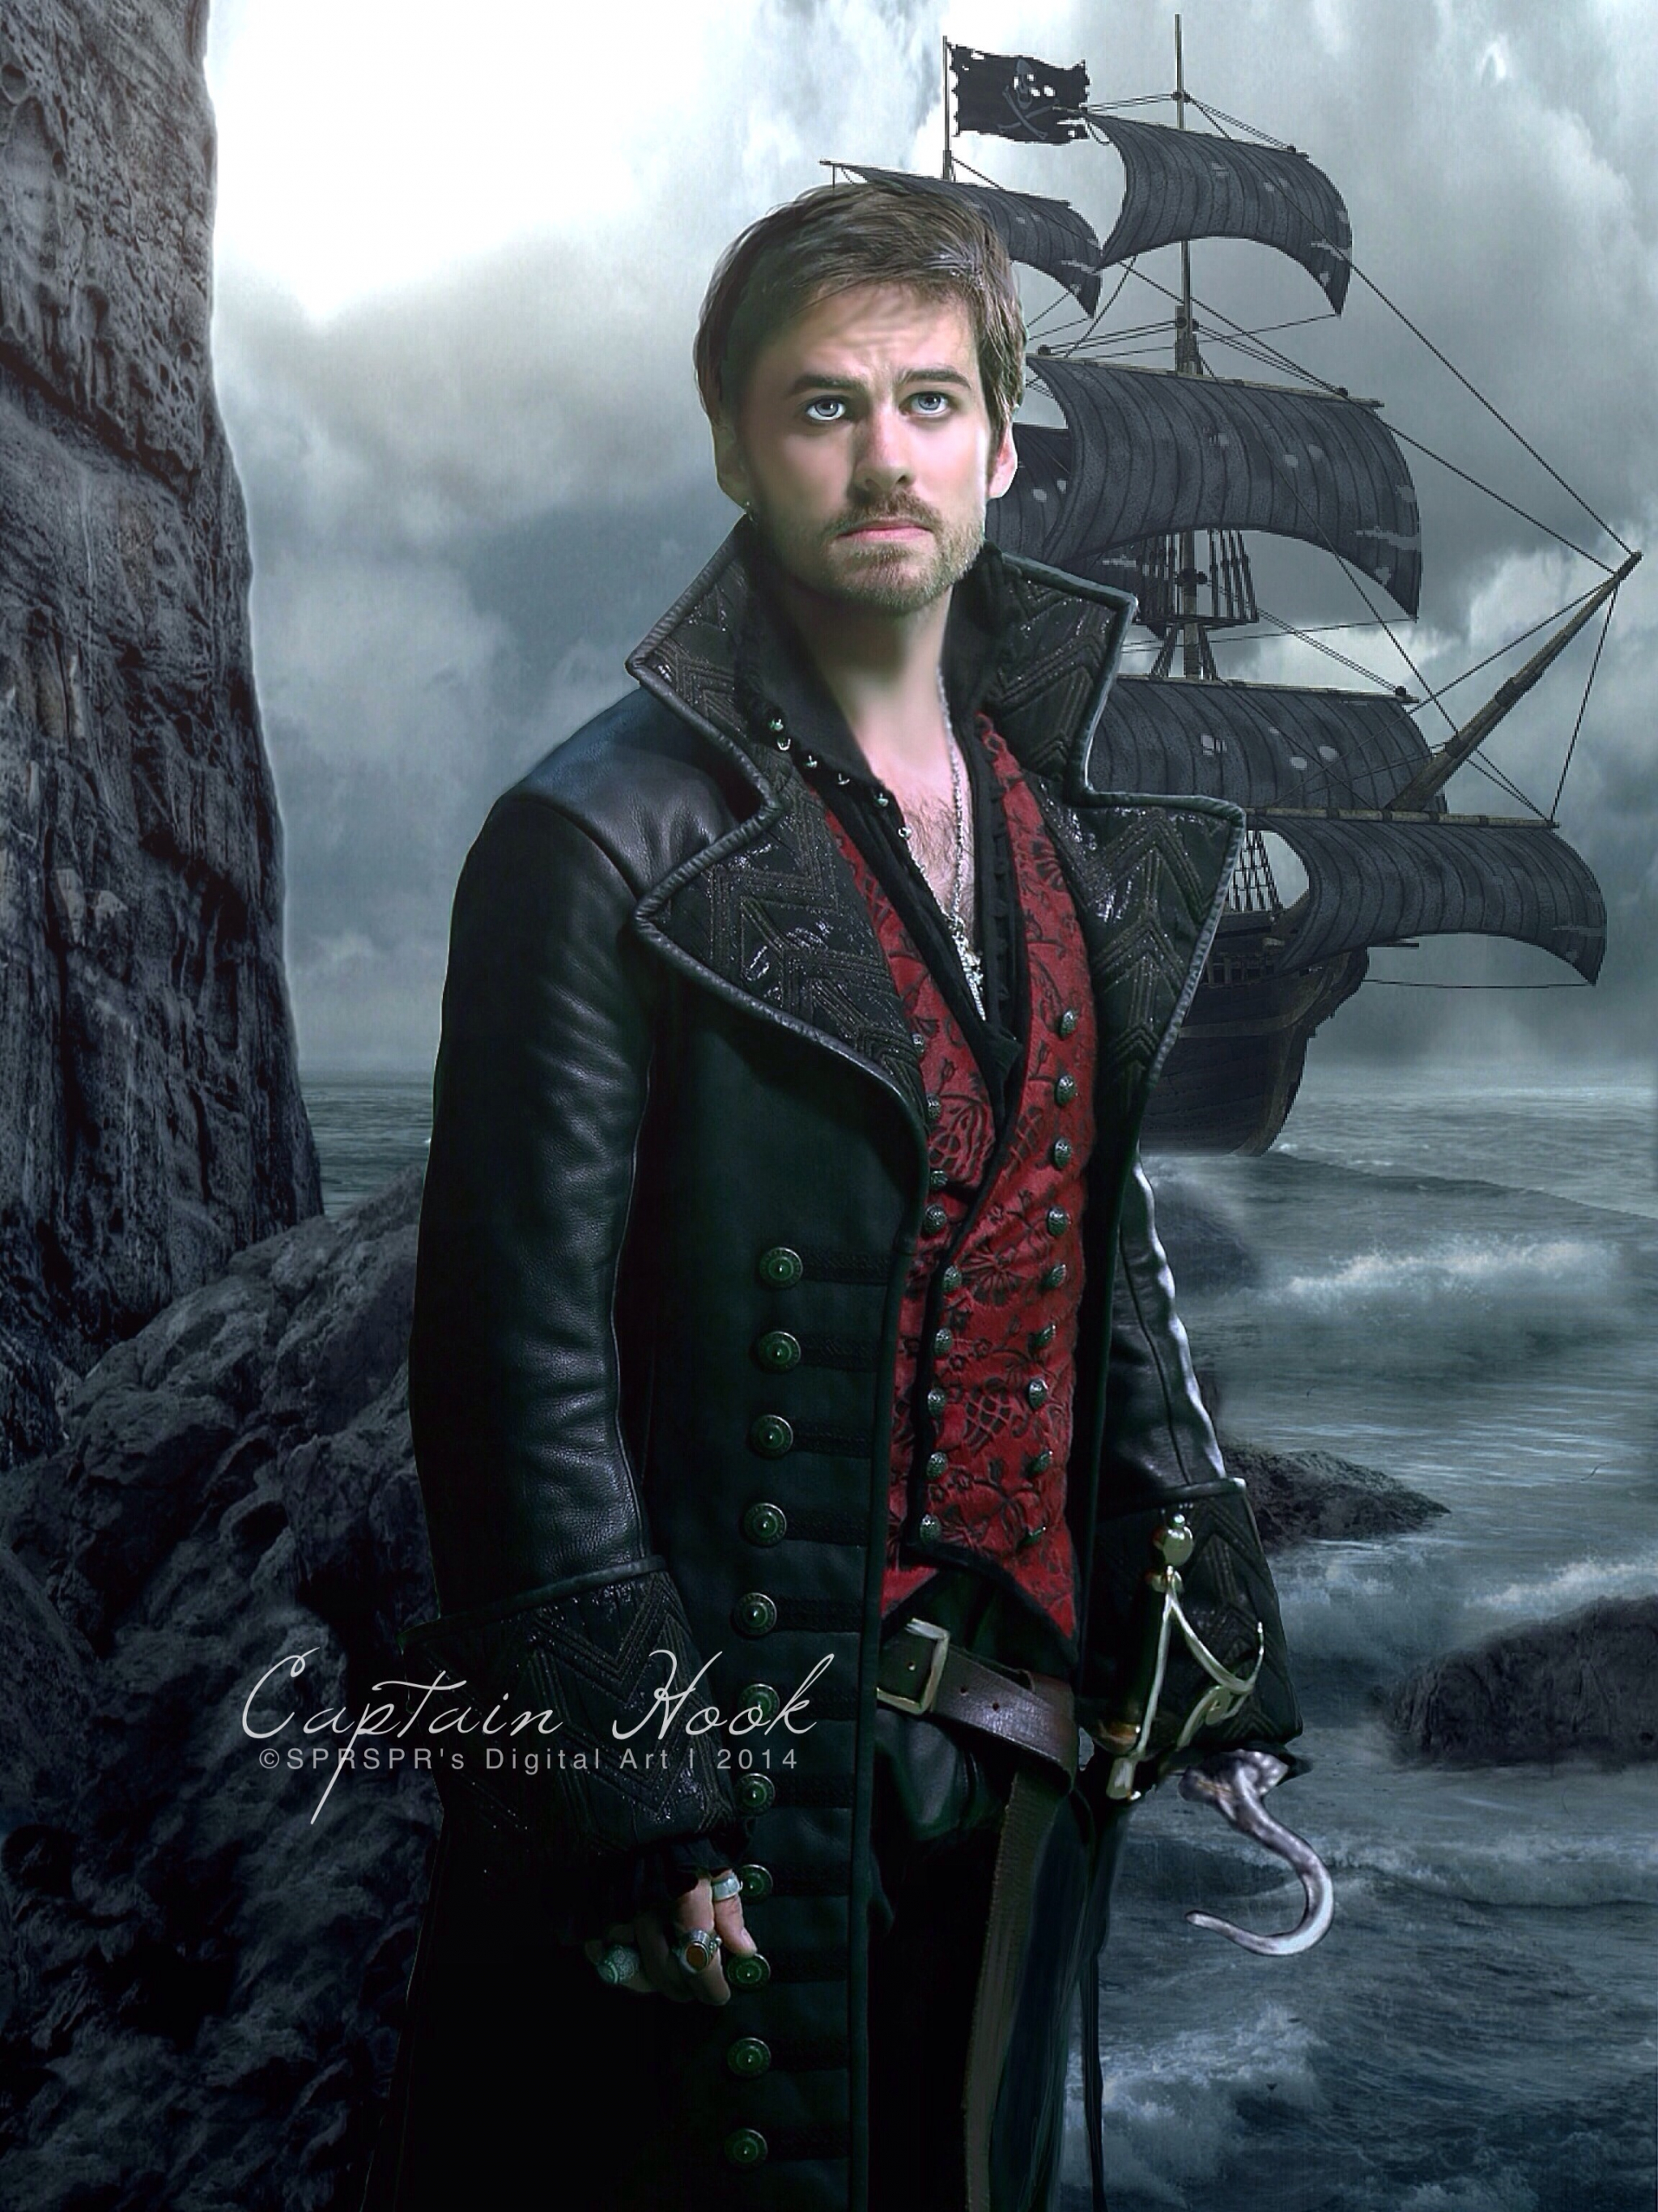 Free Download Captain Hook Once Upon A Time Wallpaper Captain Hook